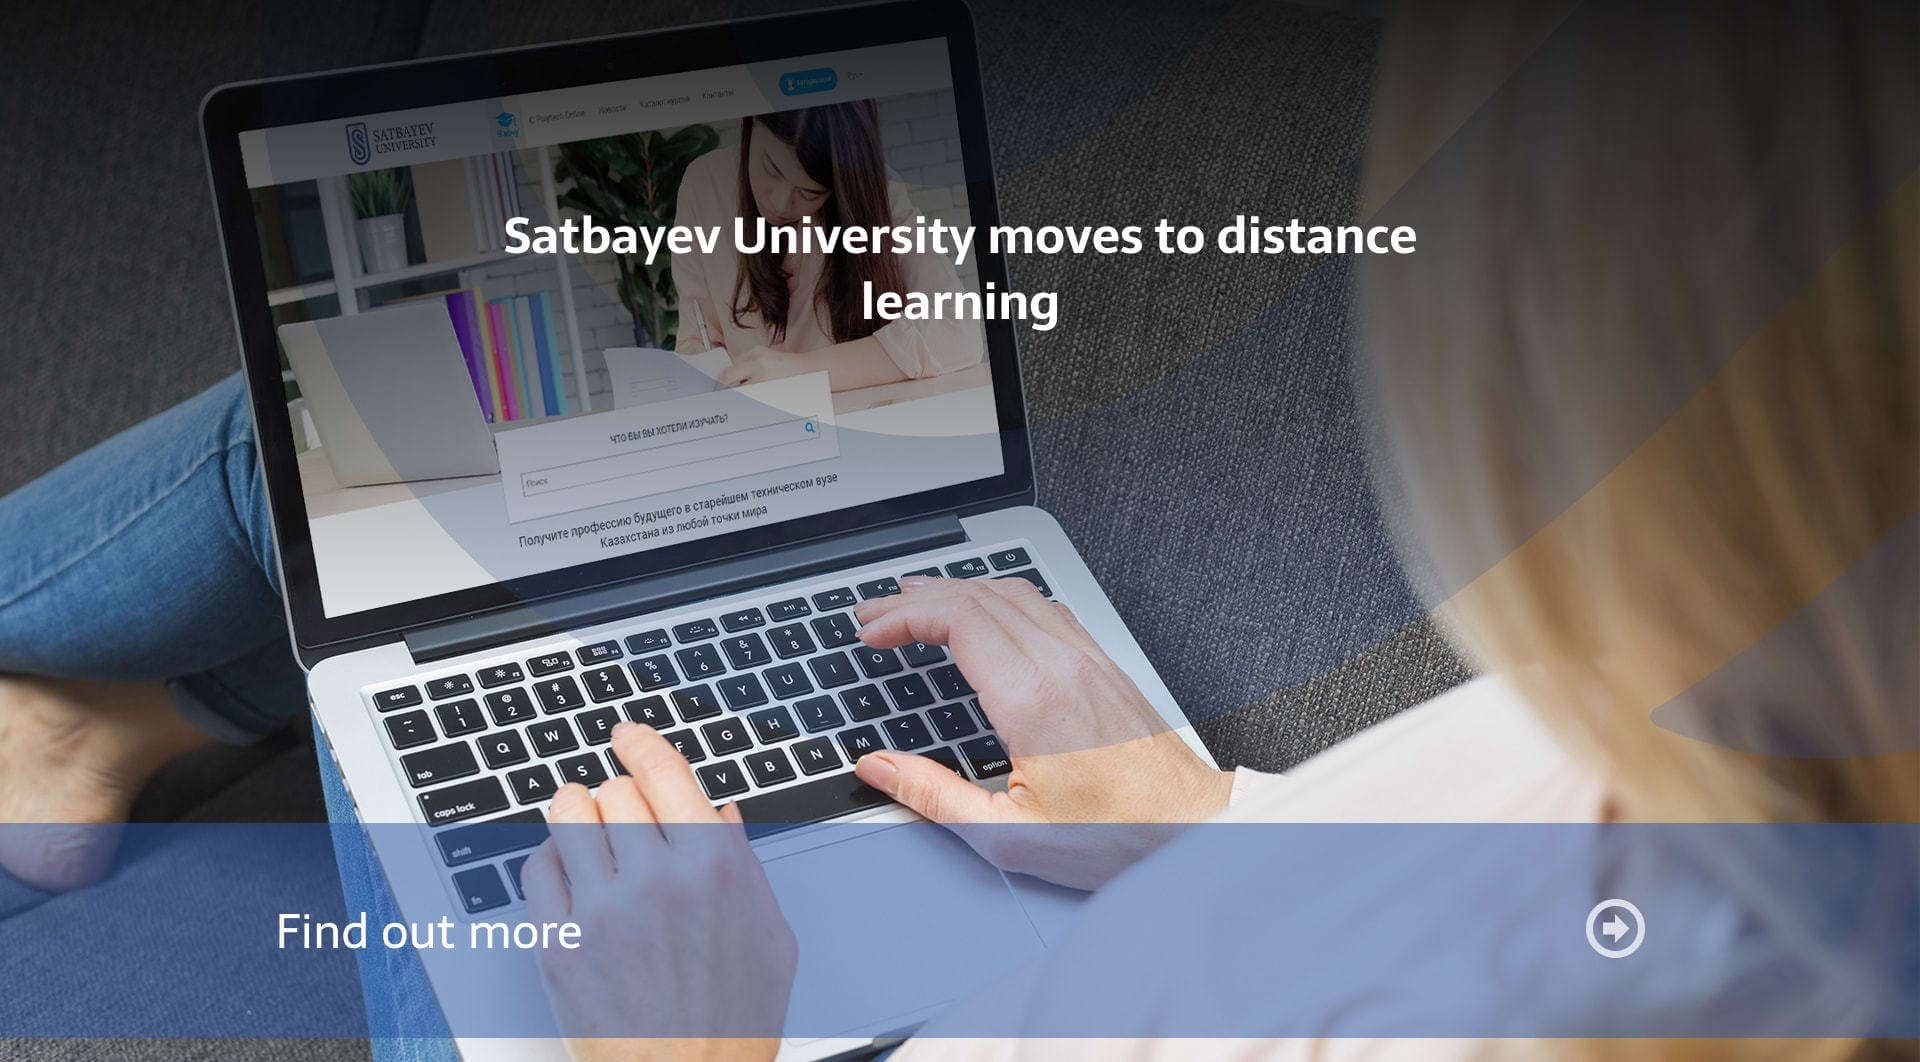 Satbayev University online learning